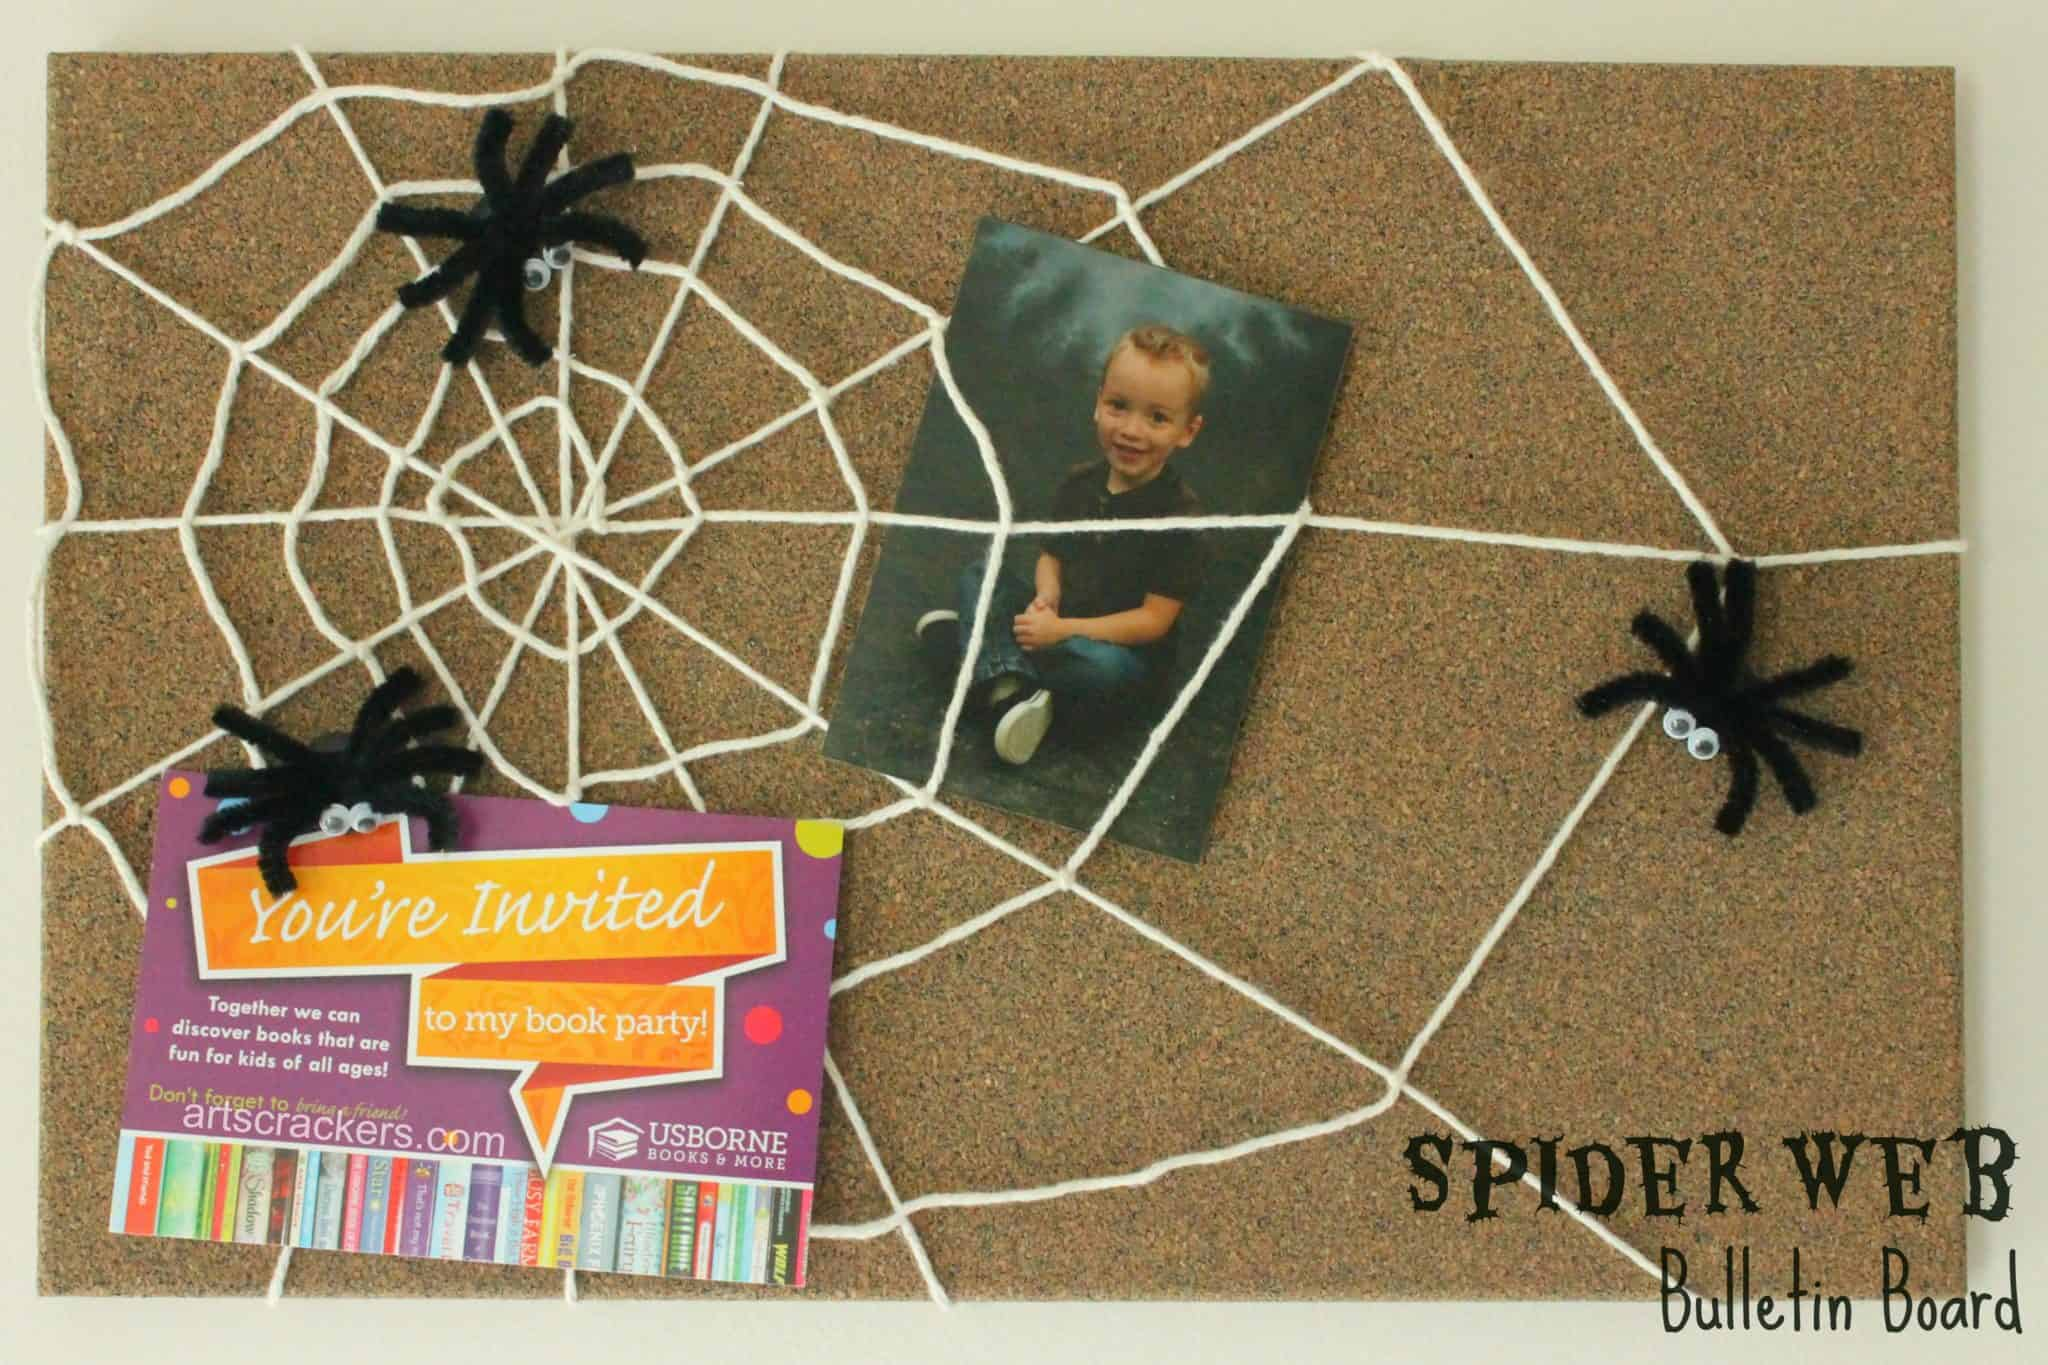 Yarn spider web bulletin board